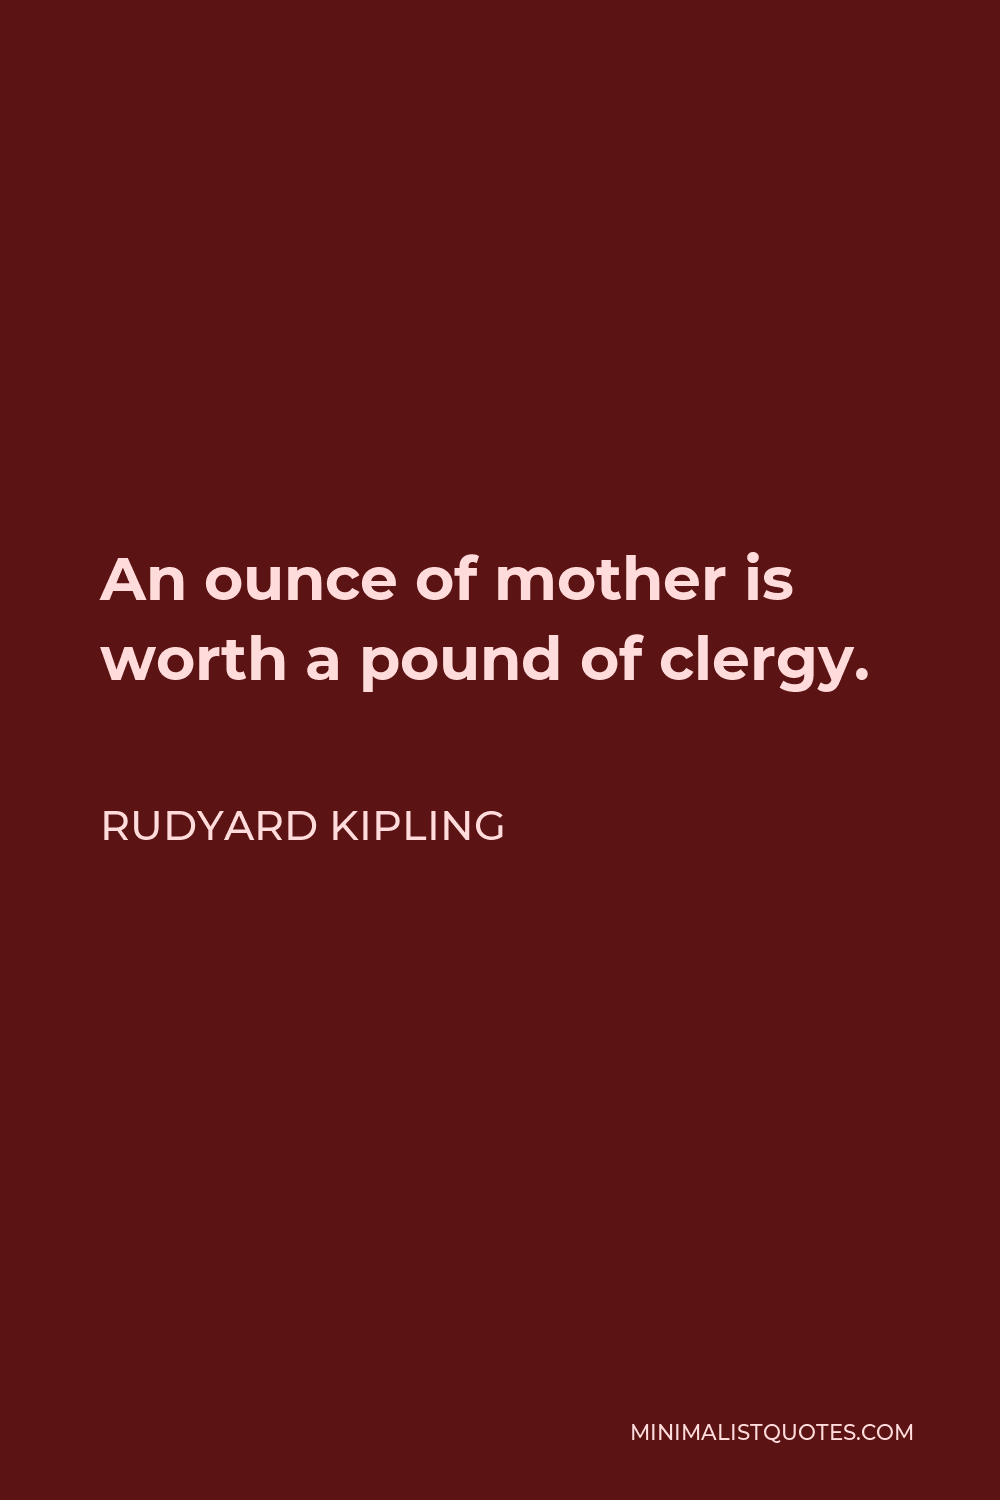 Rudyard Kipling Quote - An ounce of mother is worth a pound of clergy.